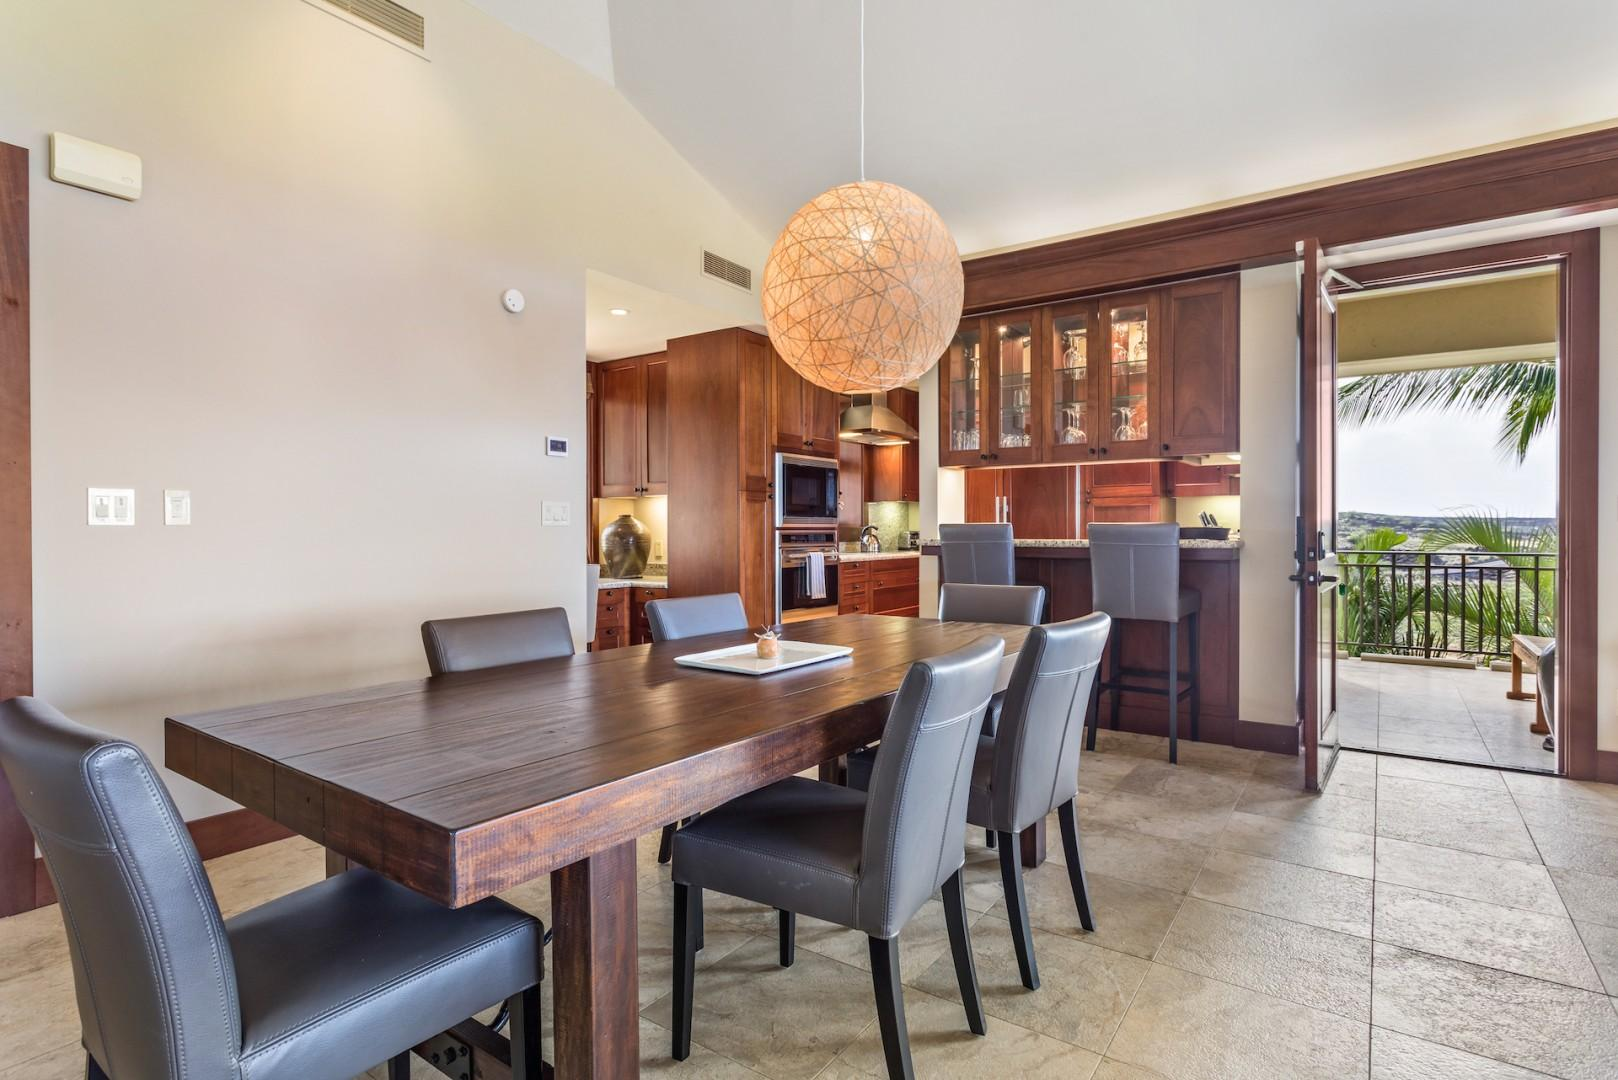 Dining table for 6 with view to the kitchen bar area.